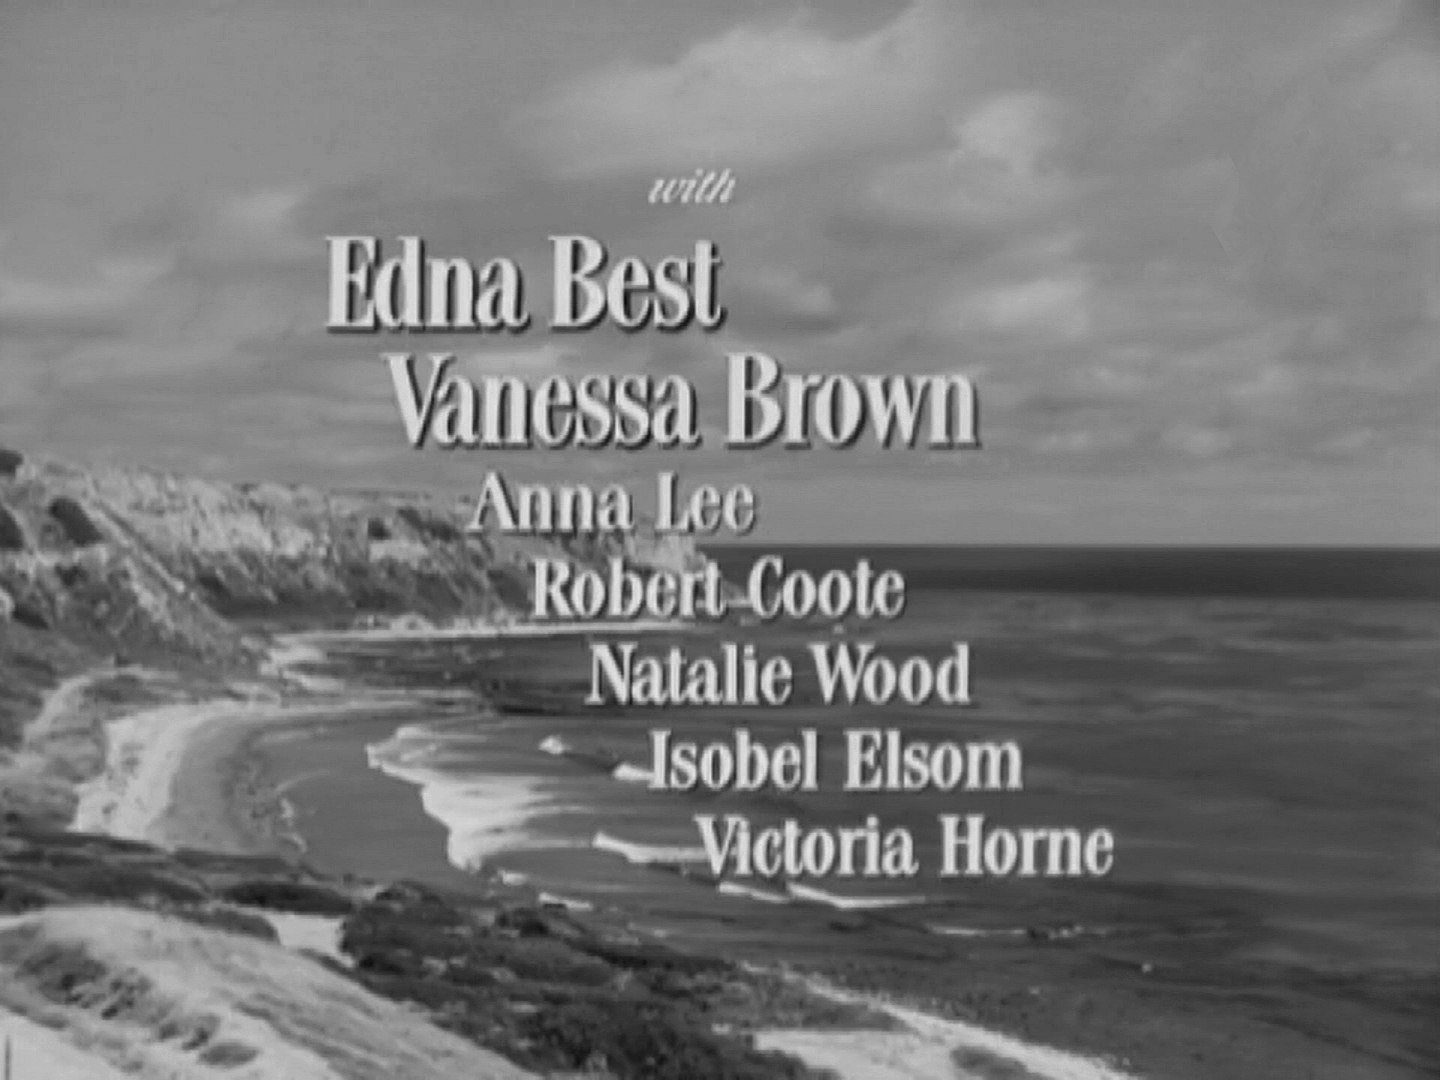 Main title from The Ghost and Mrs Muir (1947) (4). Edna Best, Vanessa Brown, Anna Lee, Robert Coote, Natalie Wood, Isobel Elsom, Victoria Horne